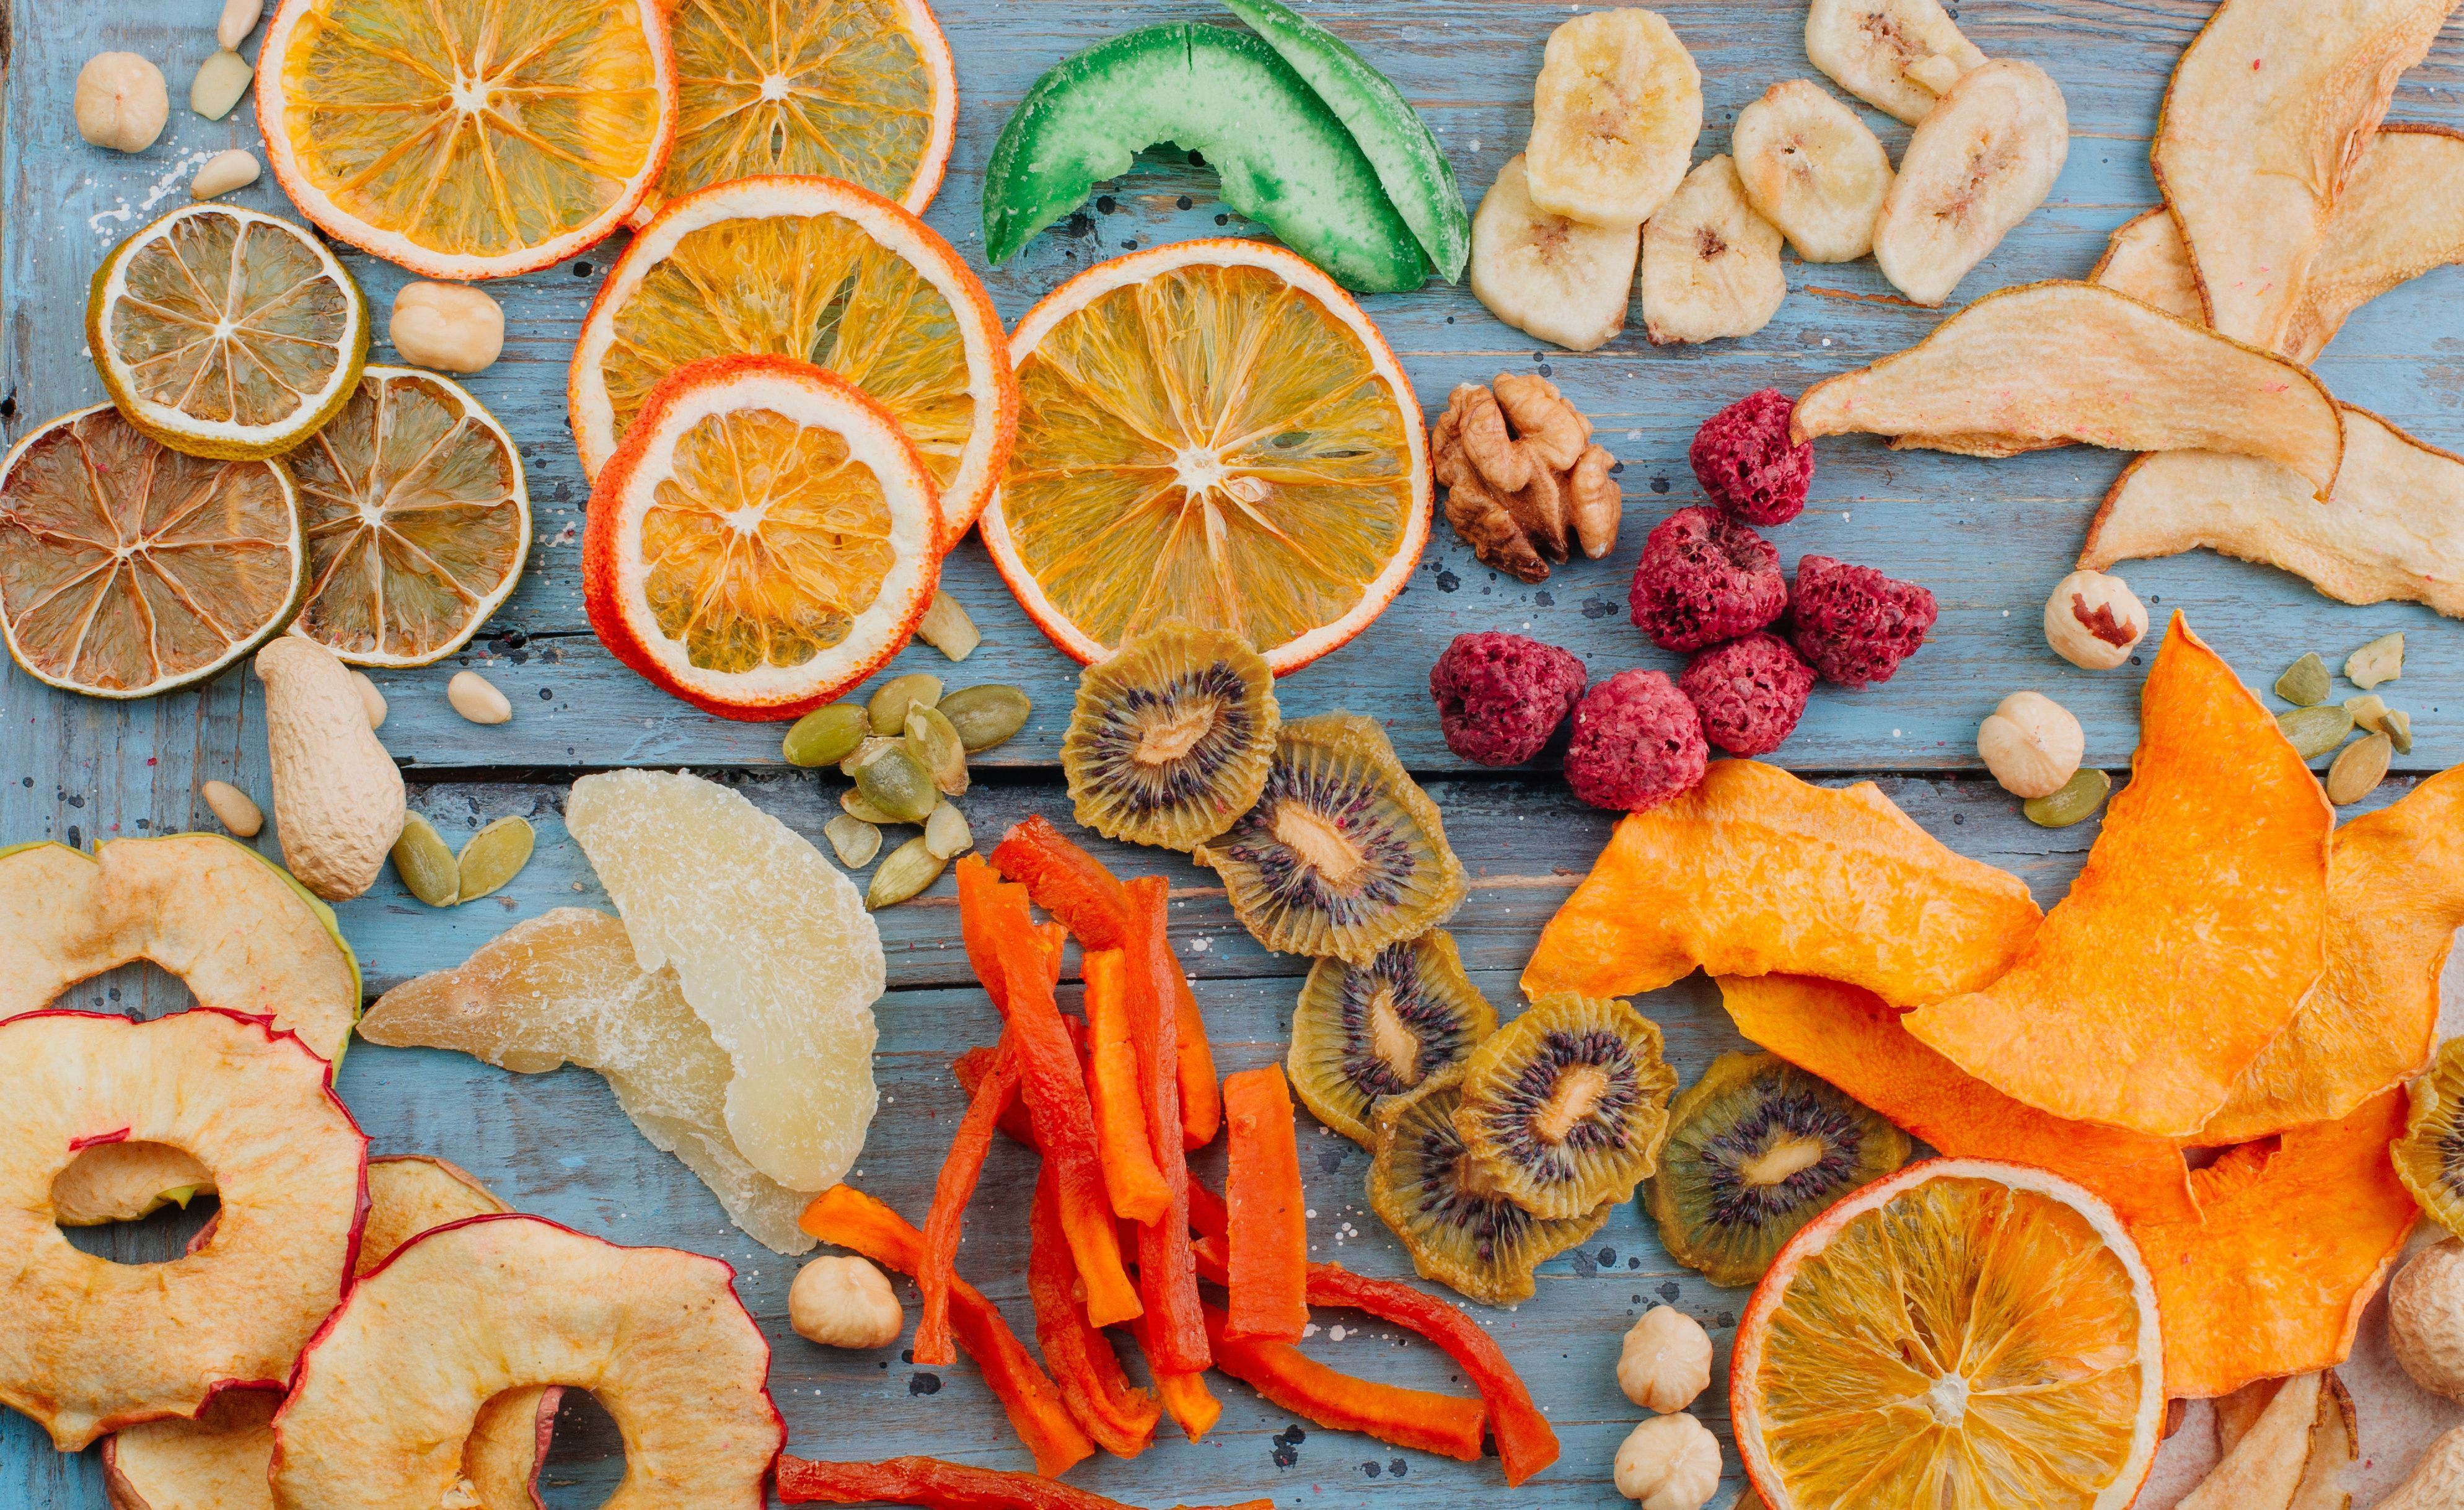 How to dehydrate fruit vegetables and cooked meats